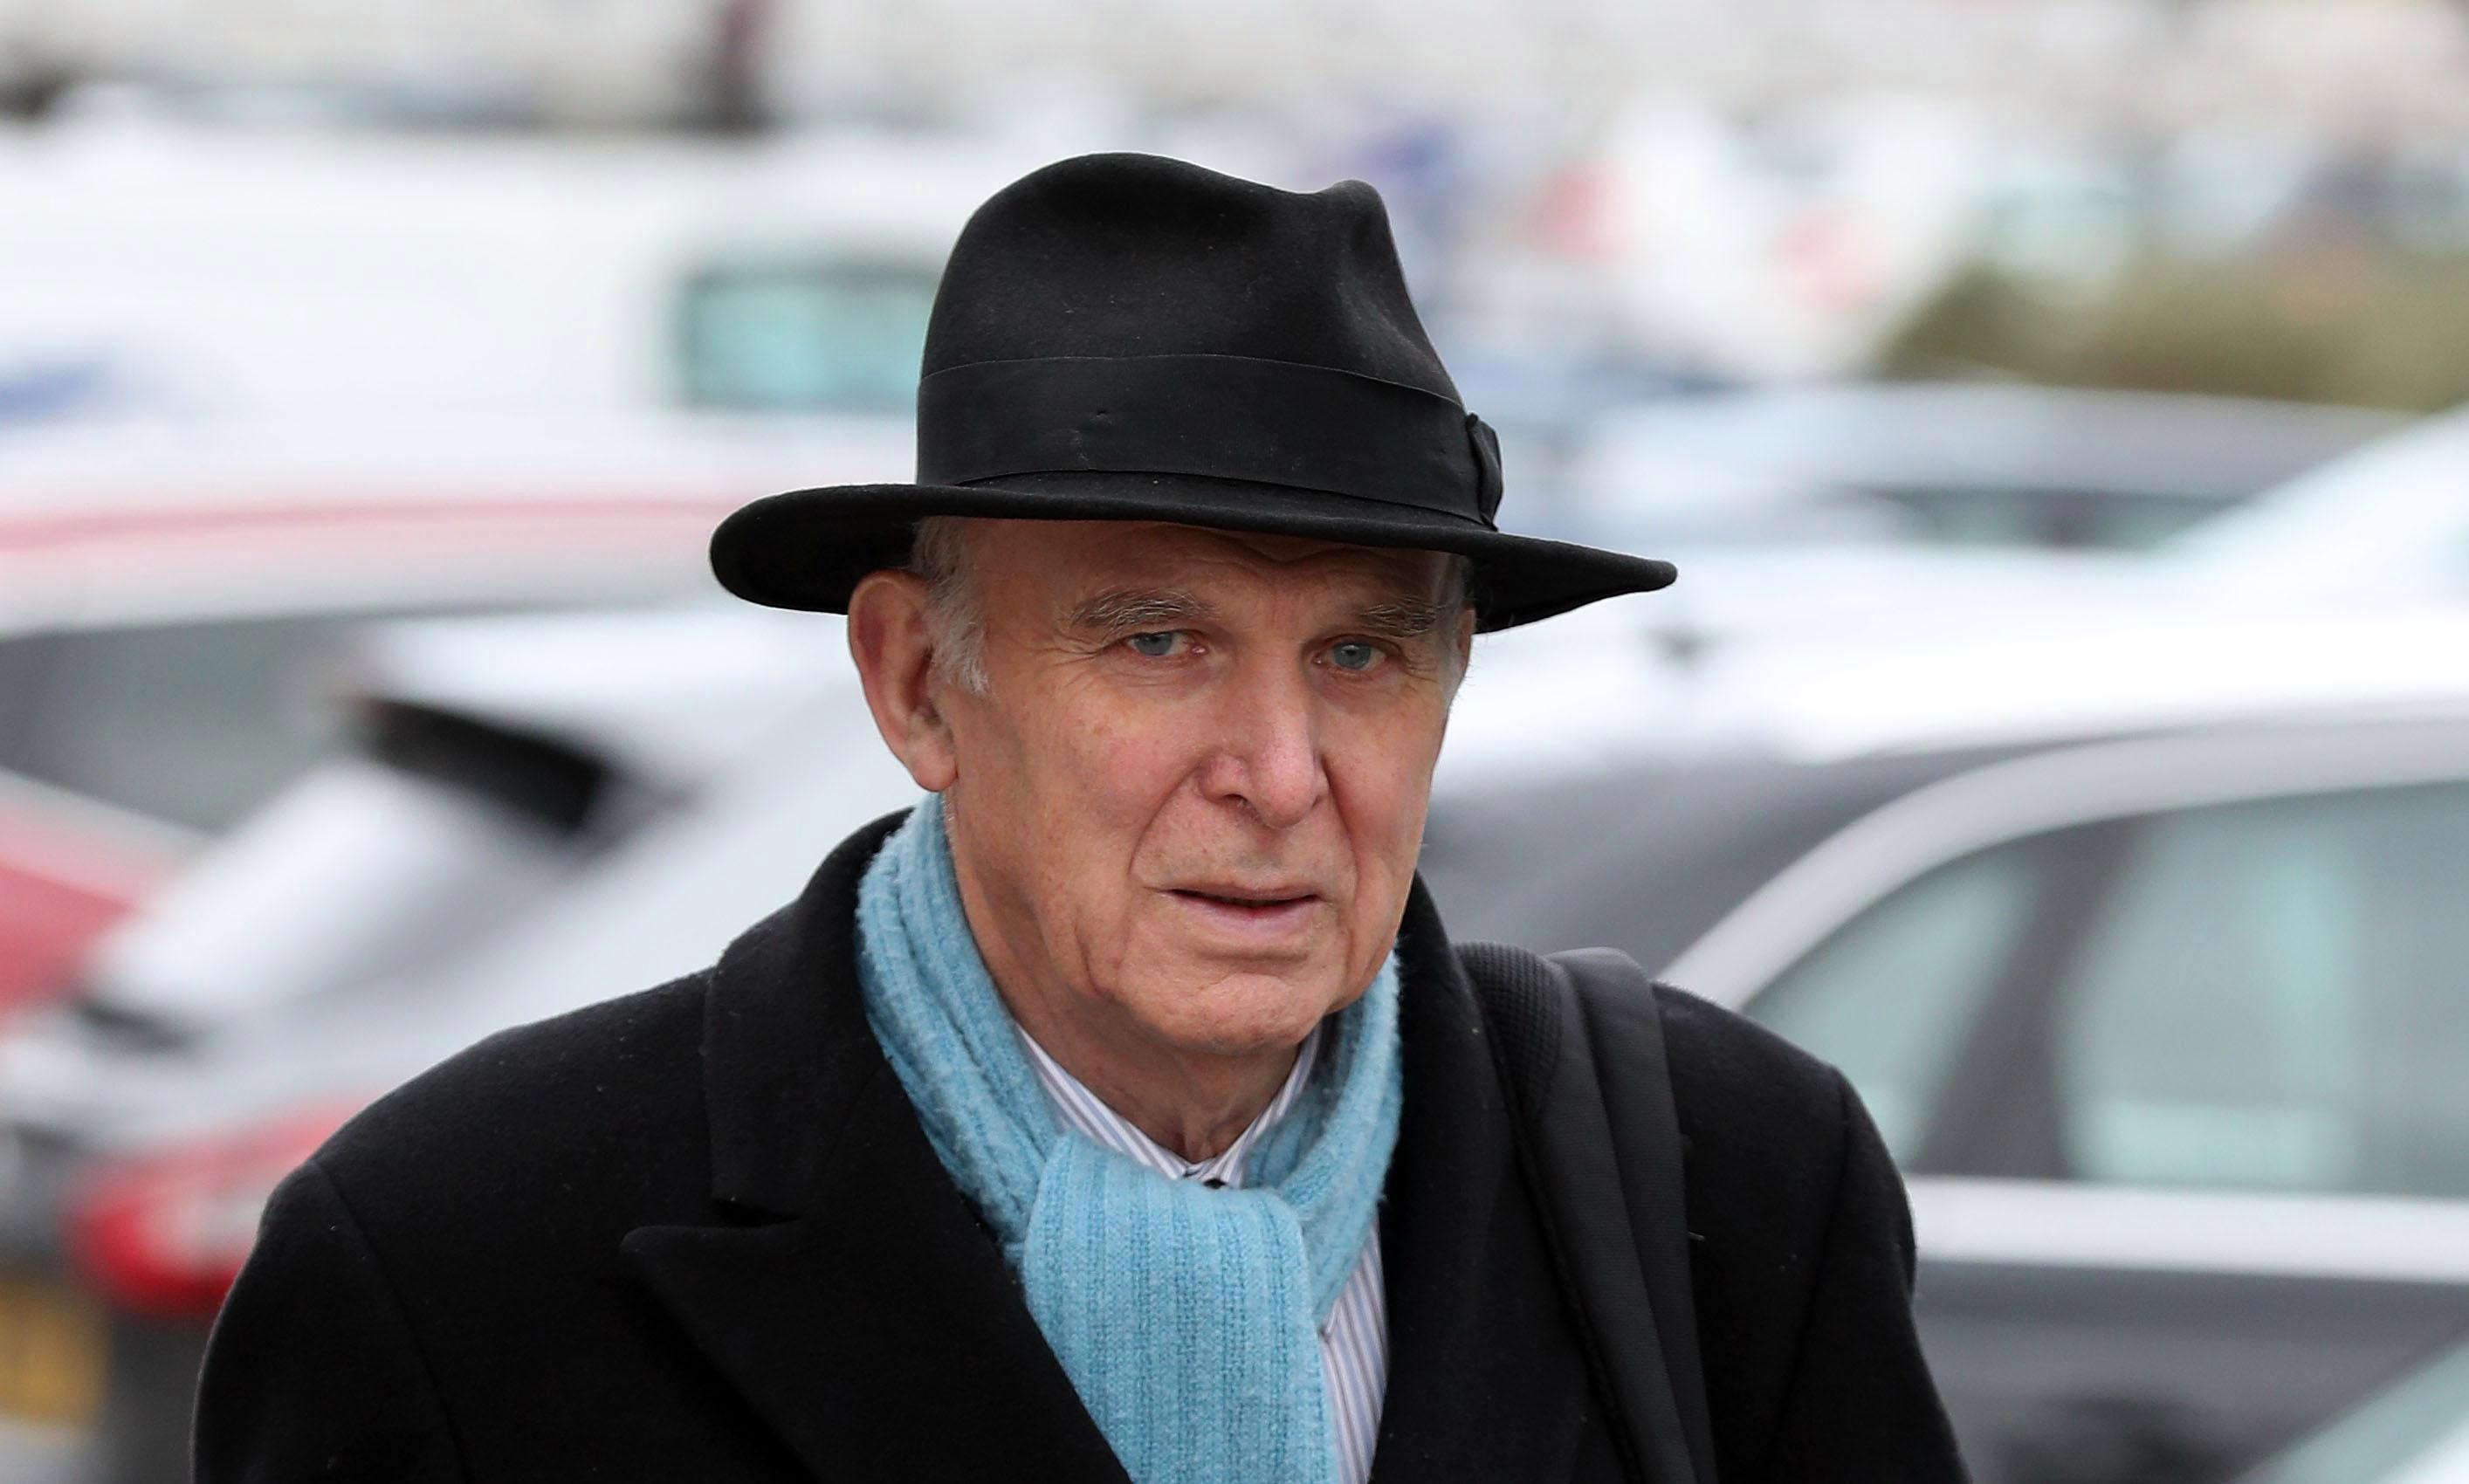 Vince Cable sparks fury with claim Brexit voters only want to leave EU because they want more 'white faces' in Britain